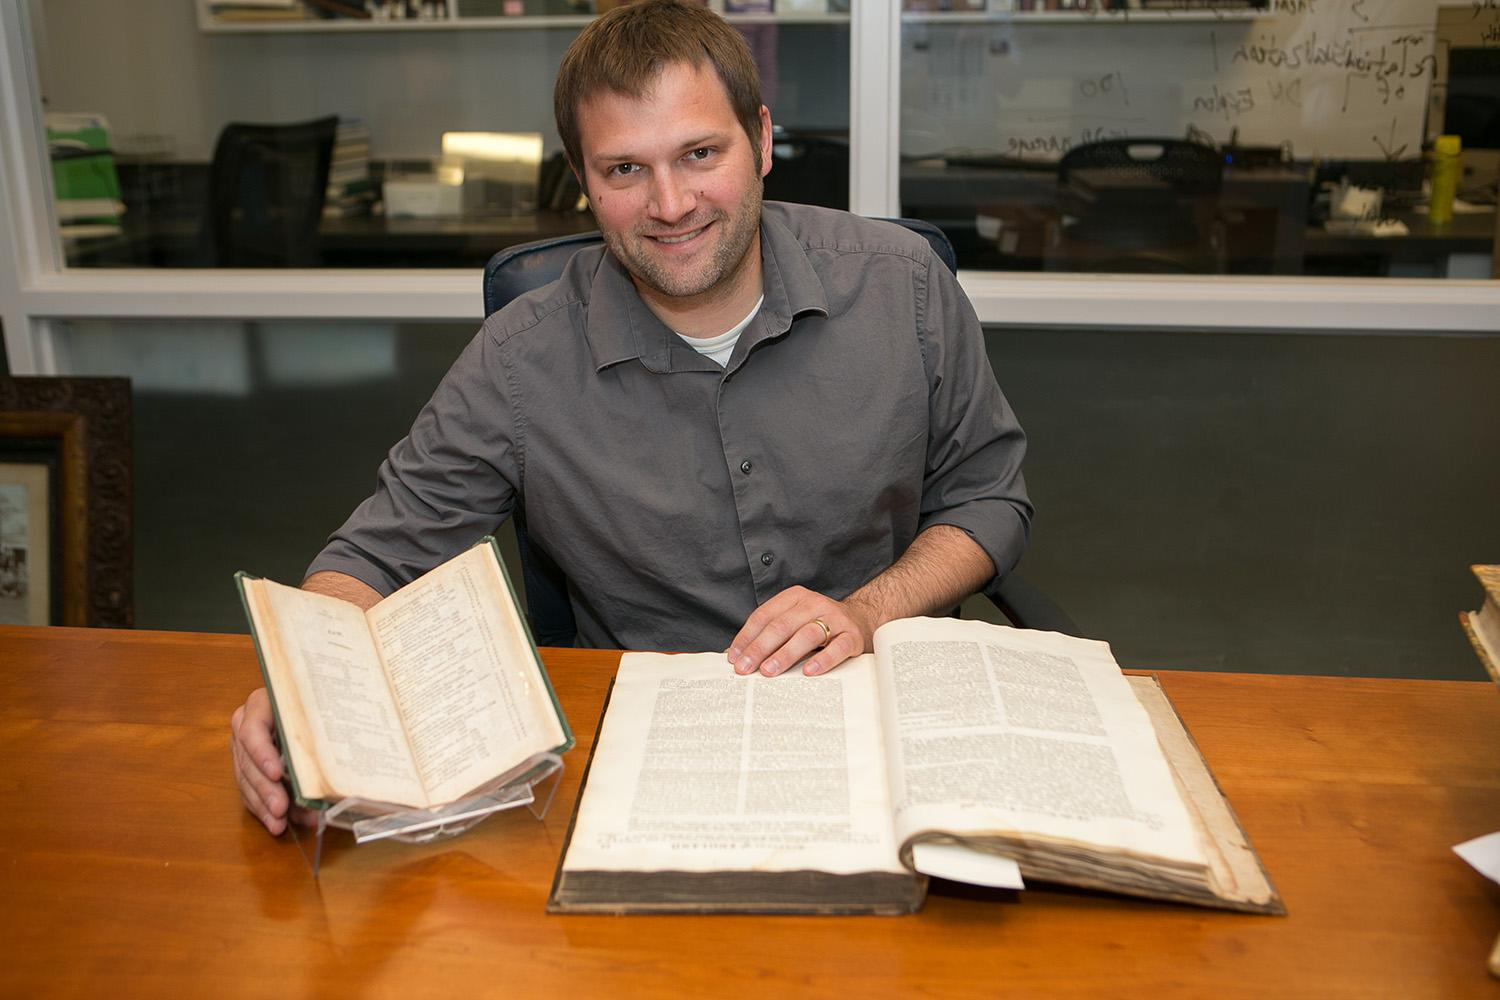 Digital Collections Librarian Loren Moulds shows a book from the catalogue, and the catalogue itself.